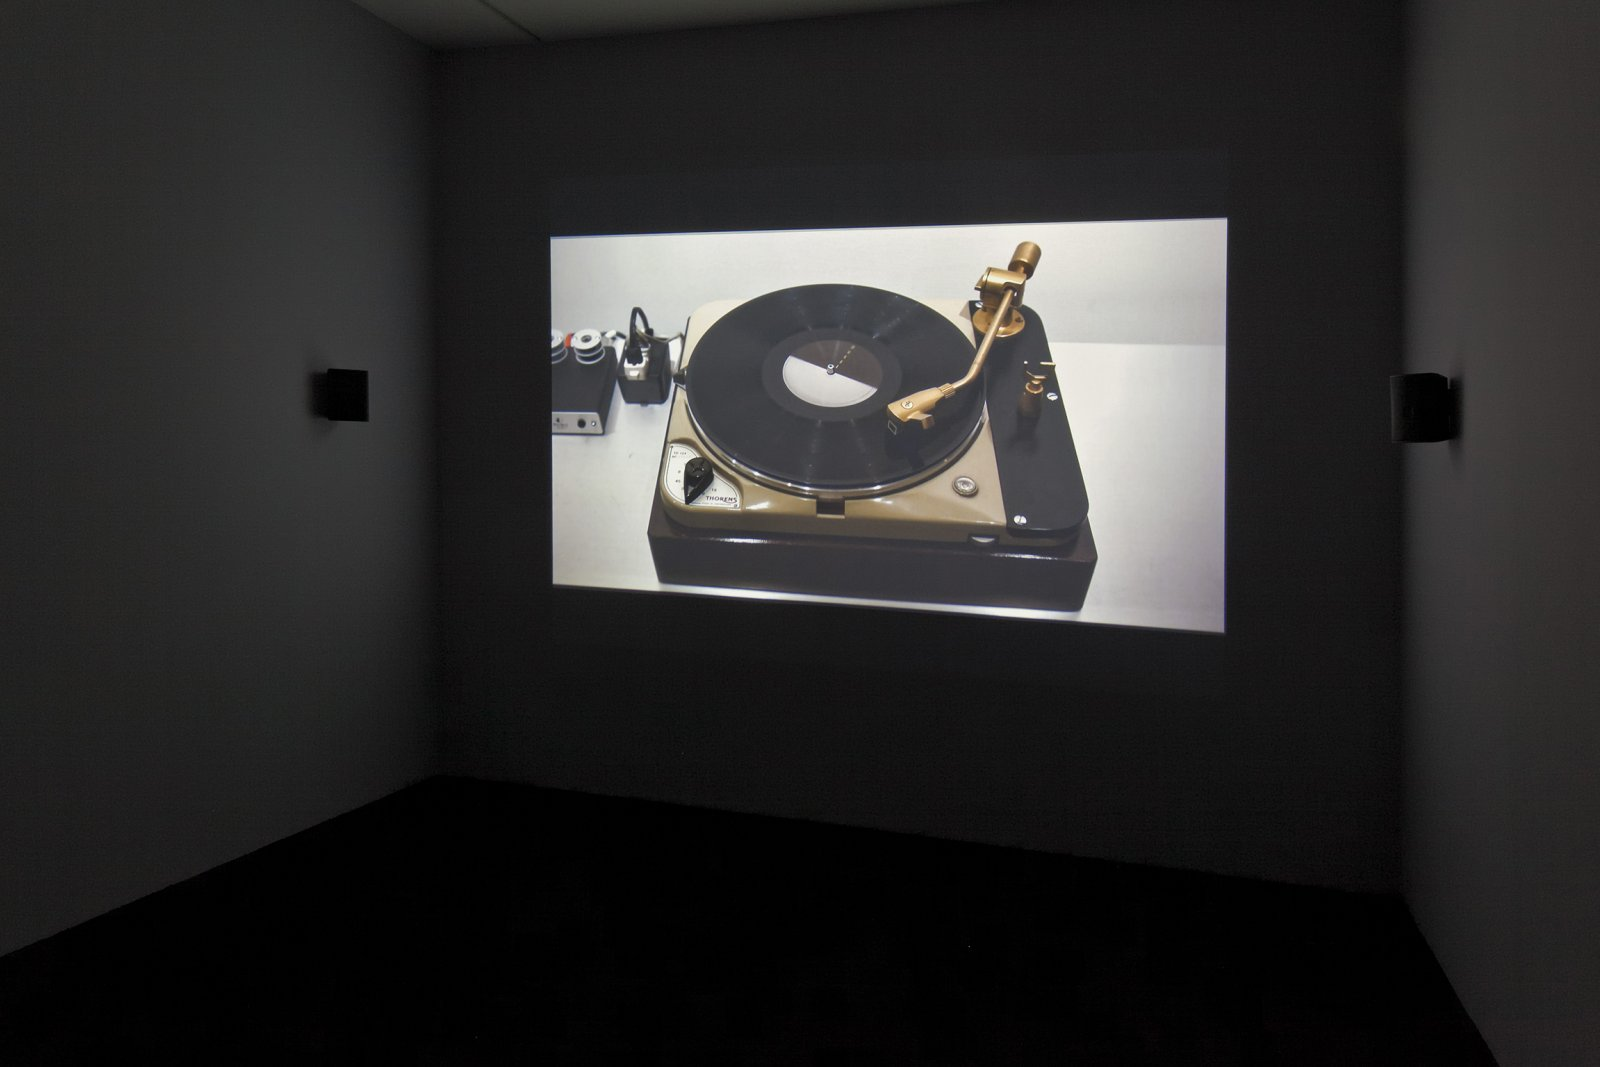 Ron Terada, Soundtrack for an Exhibition, 2010, projection played from mac mini, dimensions variable